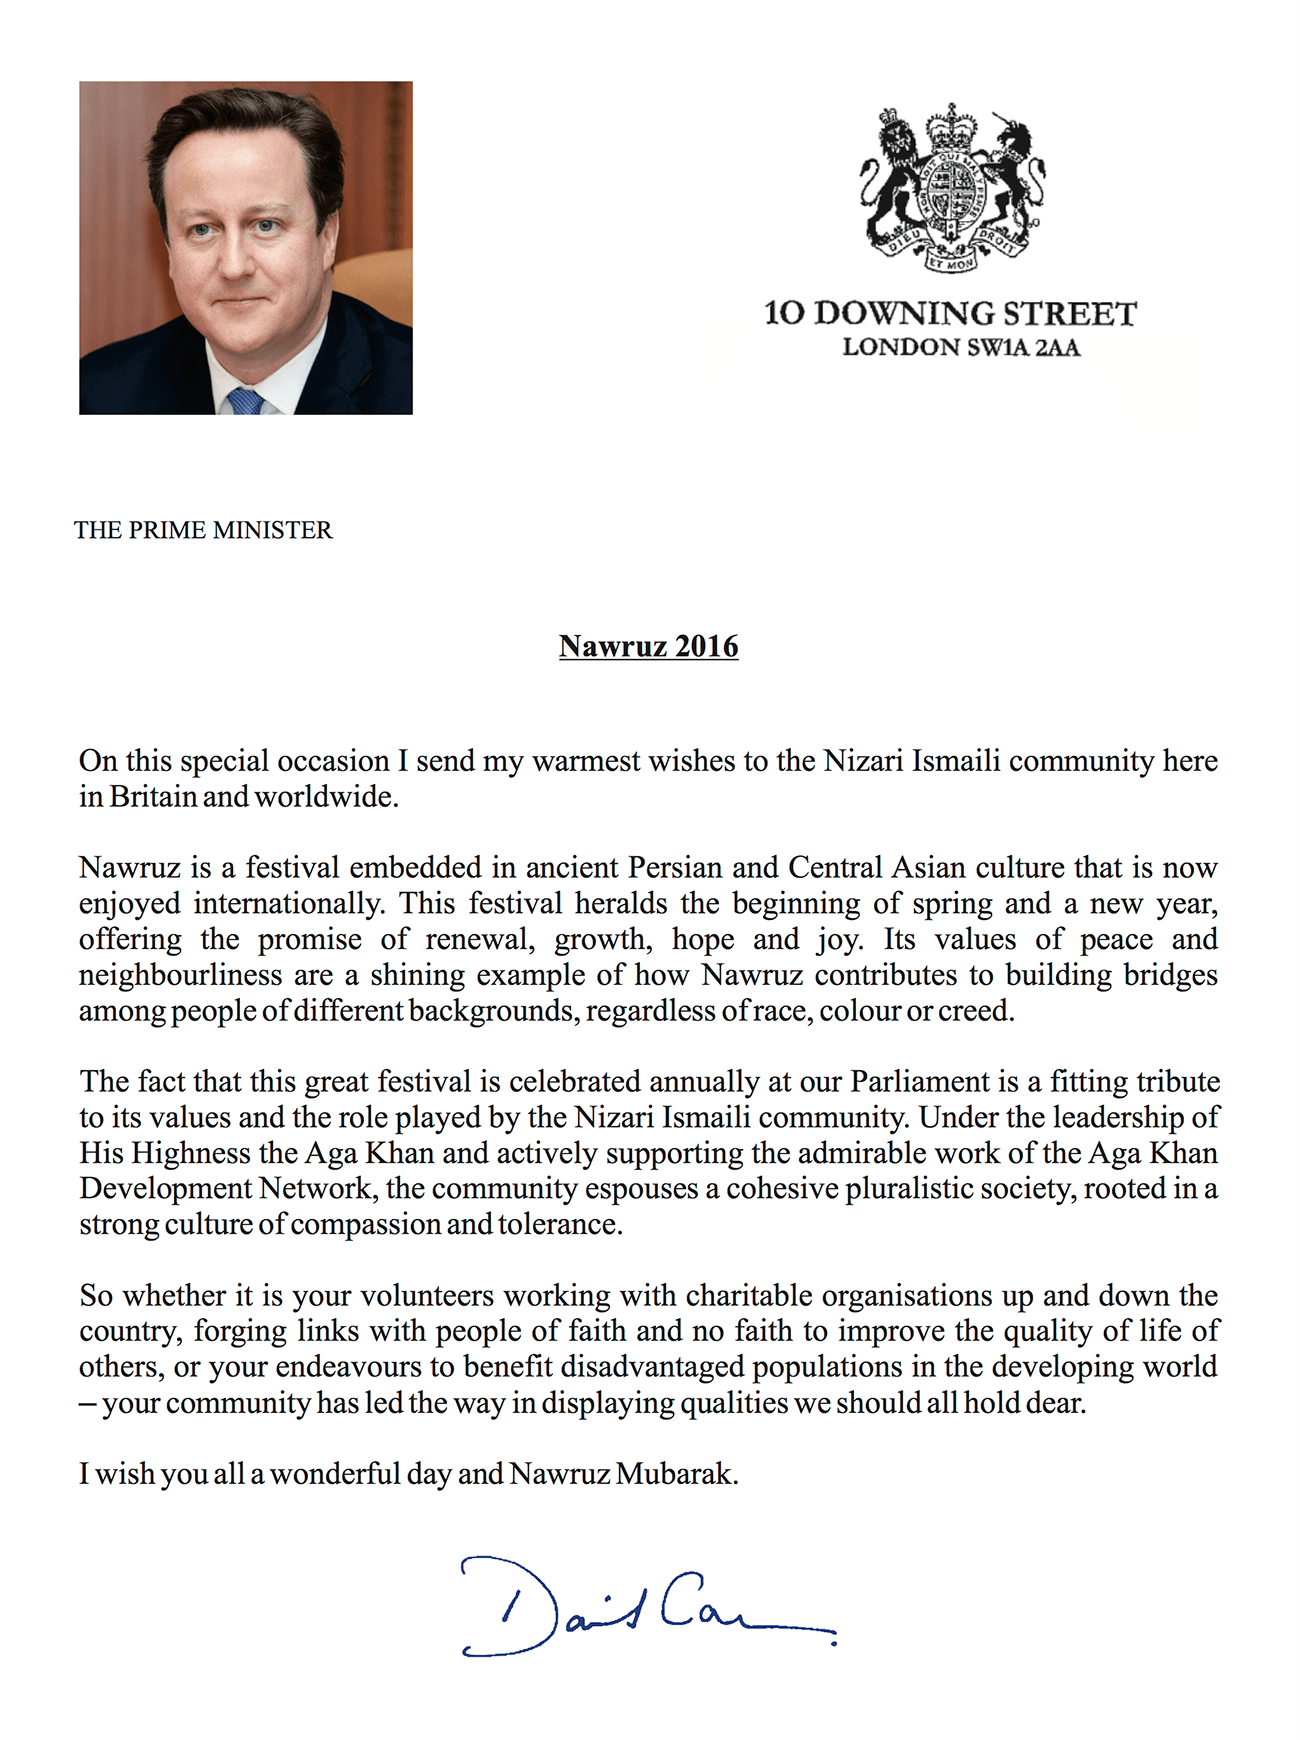 Uk muslims press for peace at 10 downing street - Letter From The Uk Prime Minister To The Ismaili Community On The Occasion Of Navroz